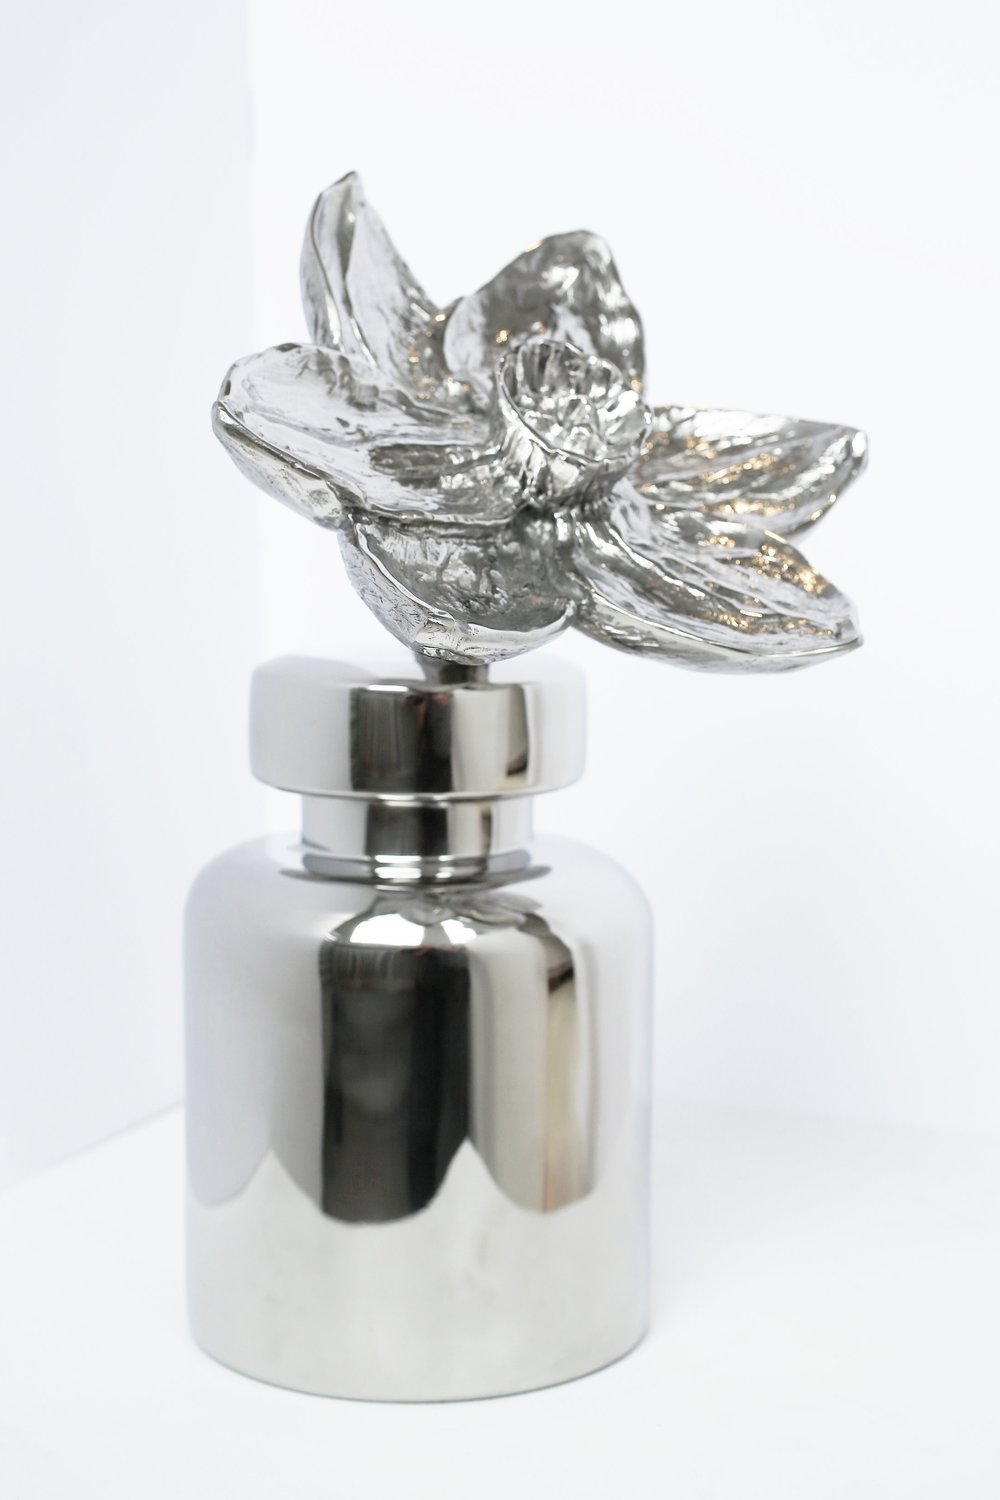 Object Petit a (Stainless Steel) , 2011  Polished stainless steel  18 x 10 x 11 inches